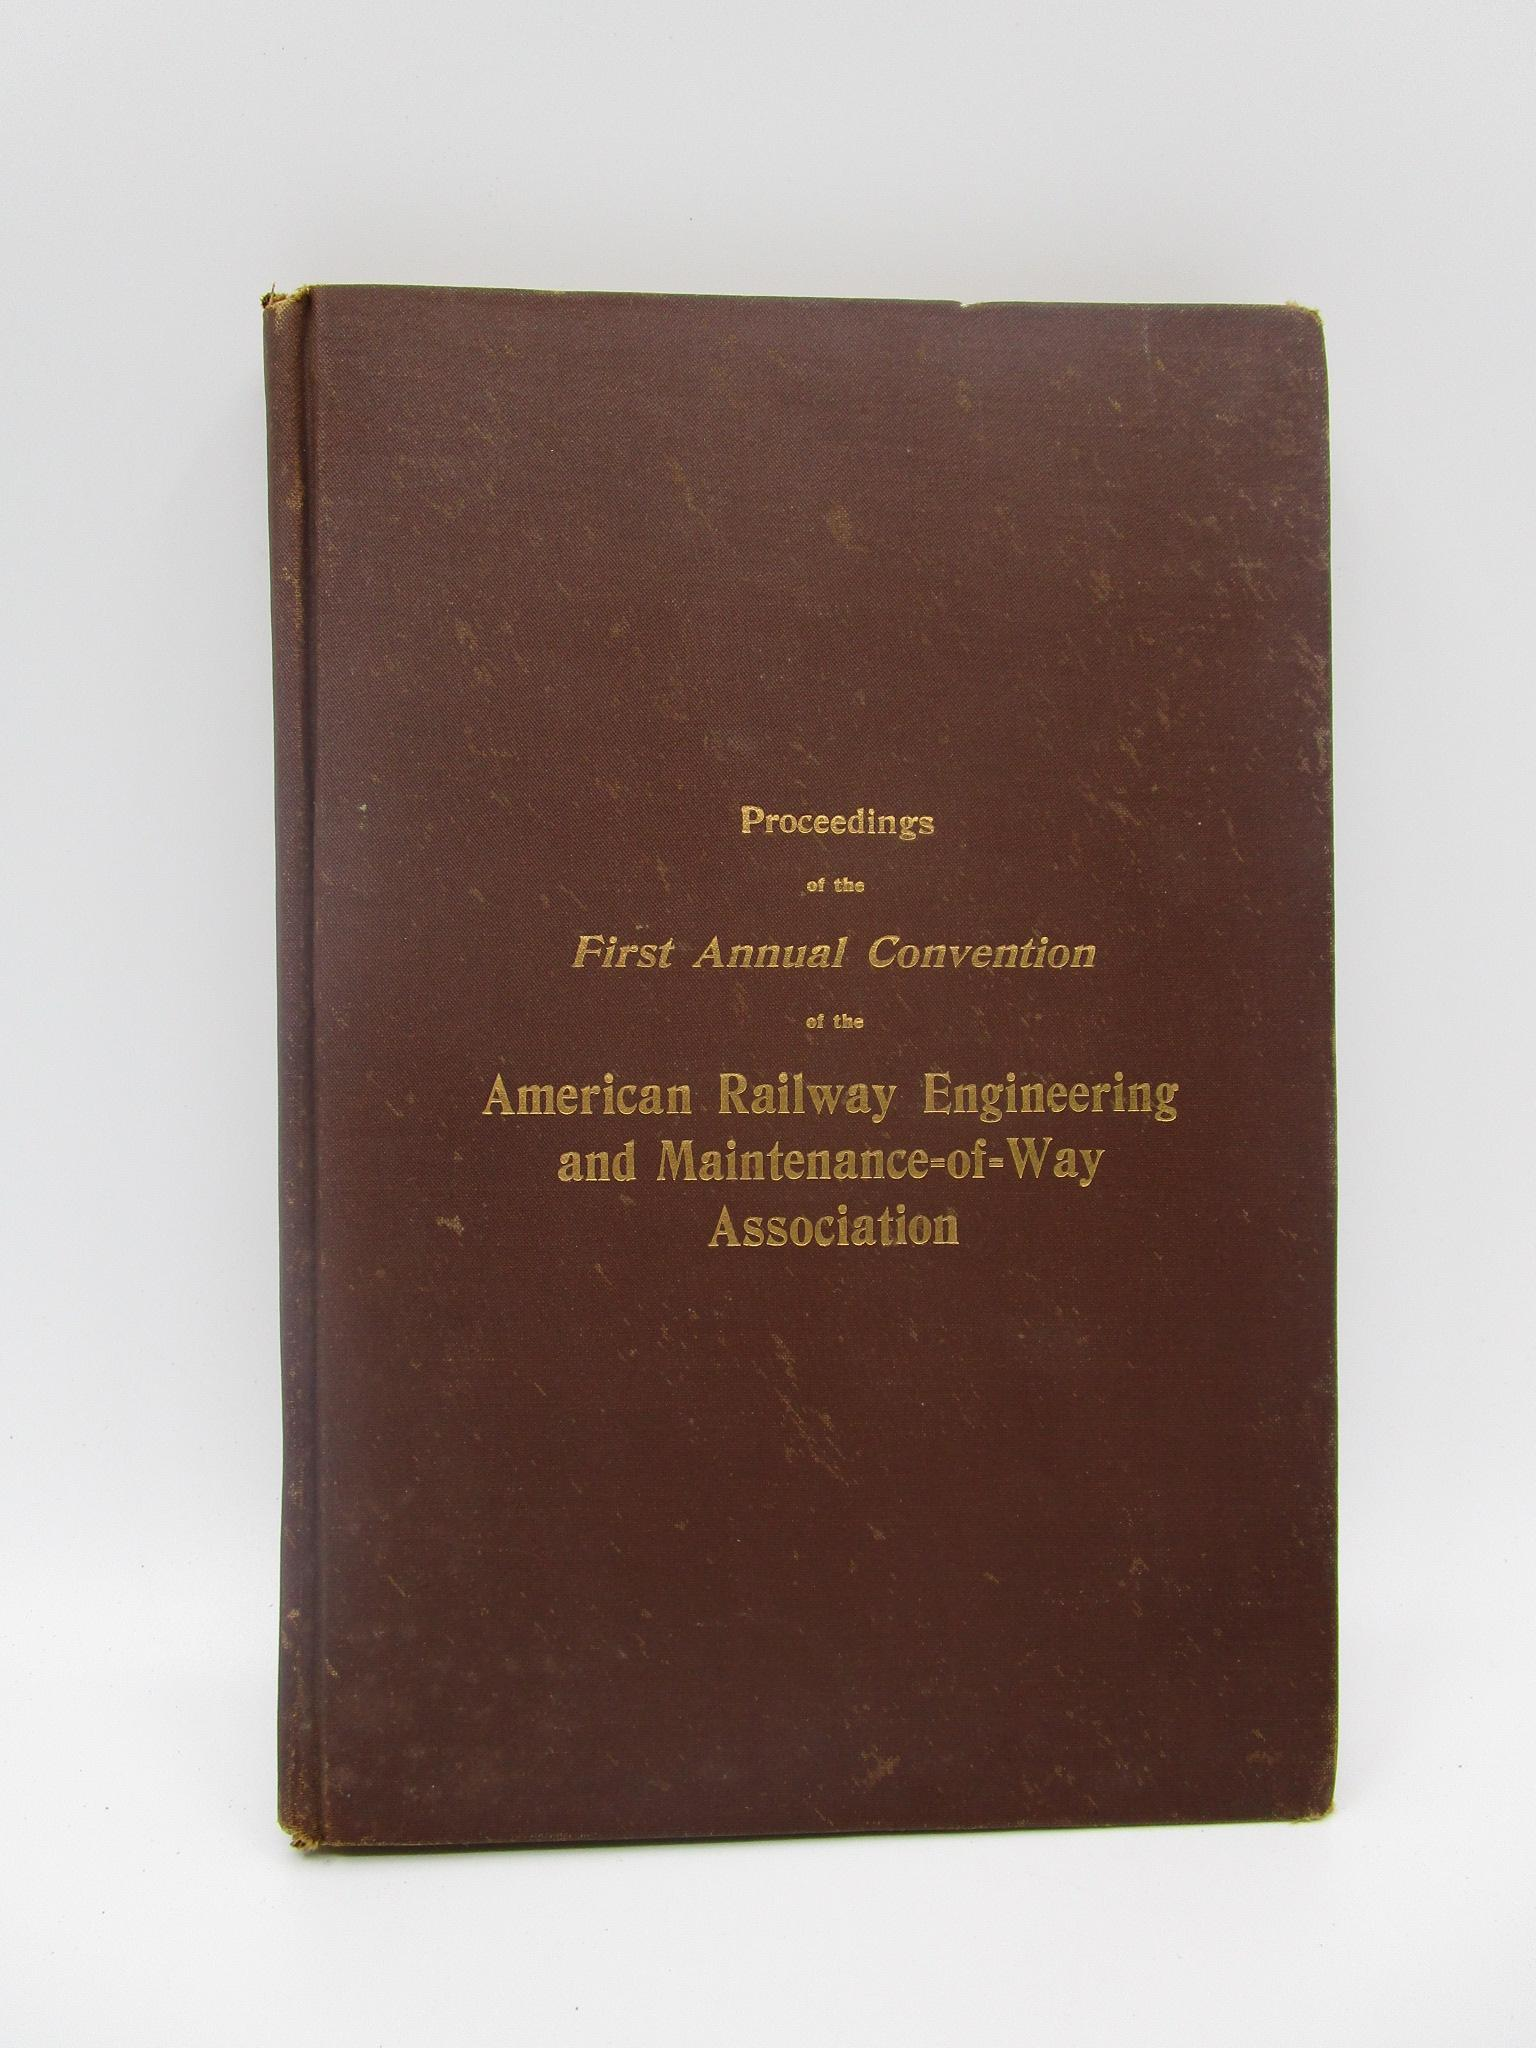 Image for Proceedings of the First Annual Convention of the American Railway Engineering and Maintenance-of-Way Association held at Steinway Hall, Chicago, Illinois, March 14 and 15, 1900 (First Edition)